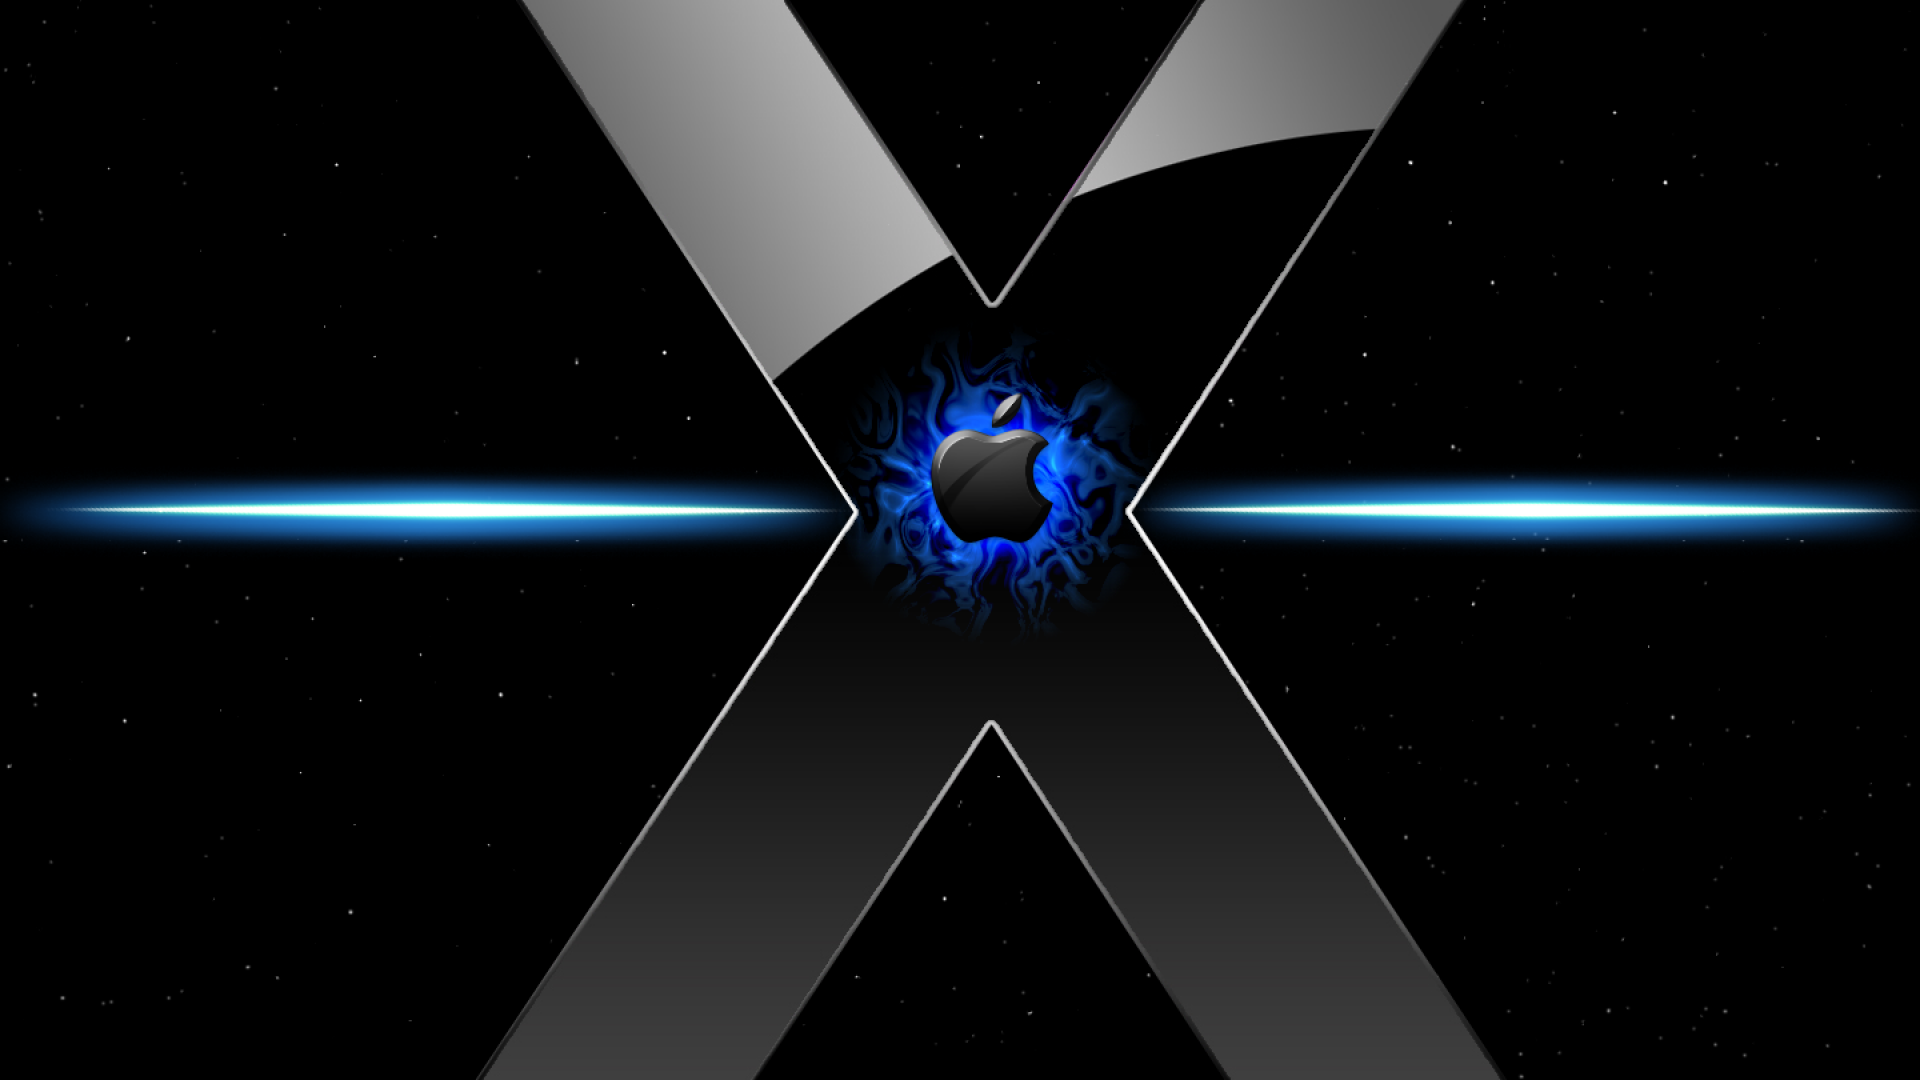 X Hd Wallpapers: Blue OS X Wallpaper